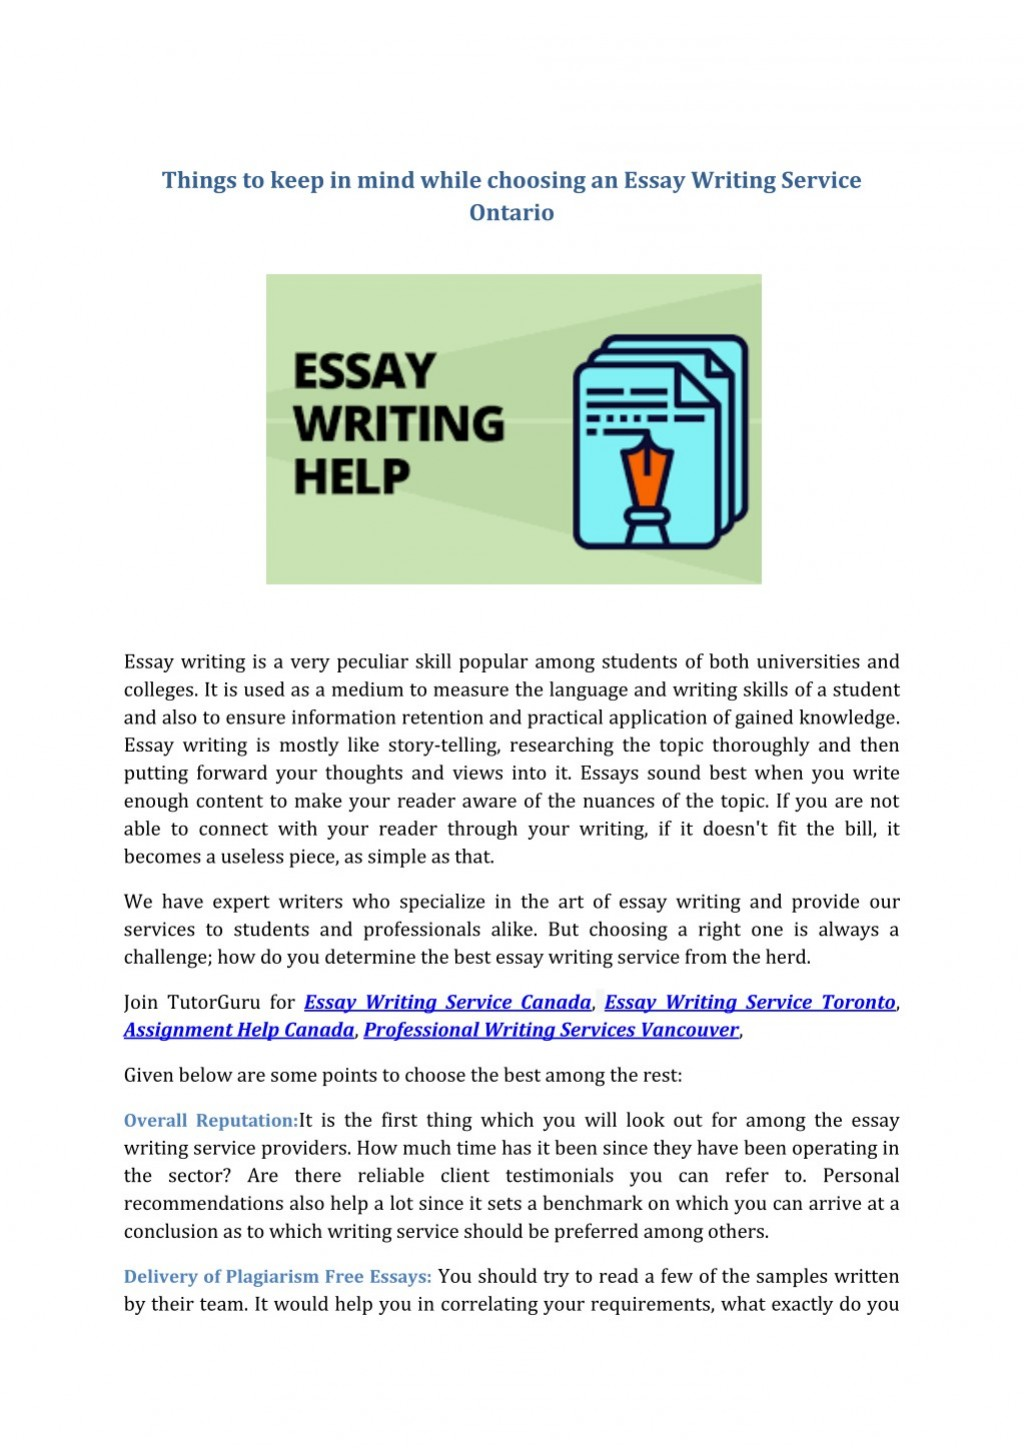 017 Essay Example Free Writing Service Things To Keep In Mind While Choosing An Shocking Draft Online Uk Large